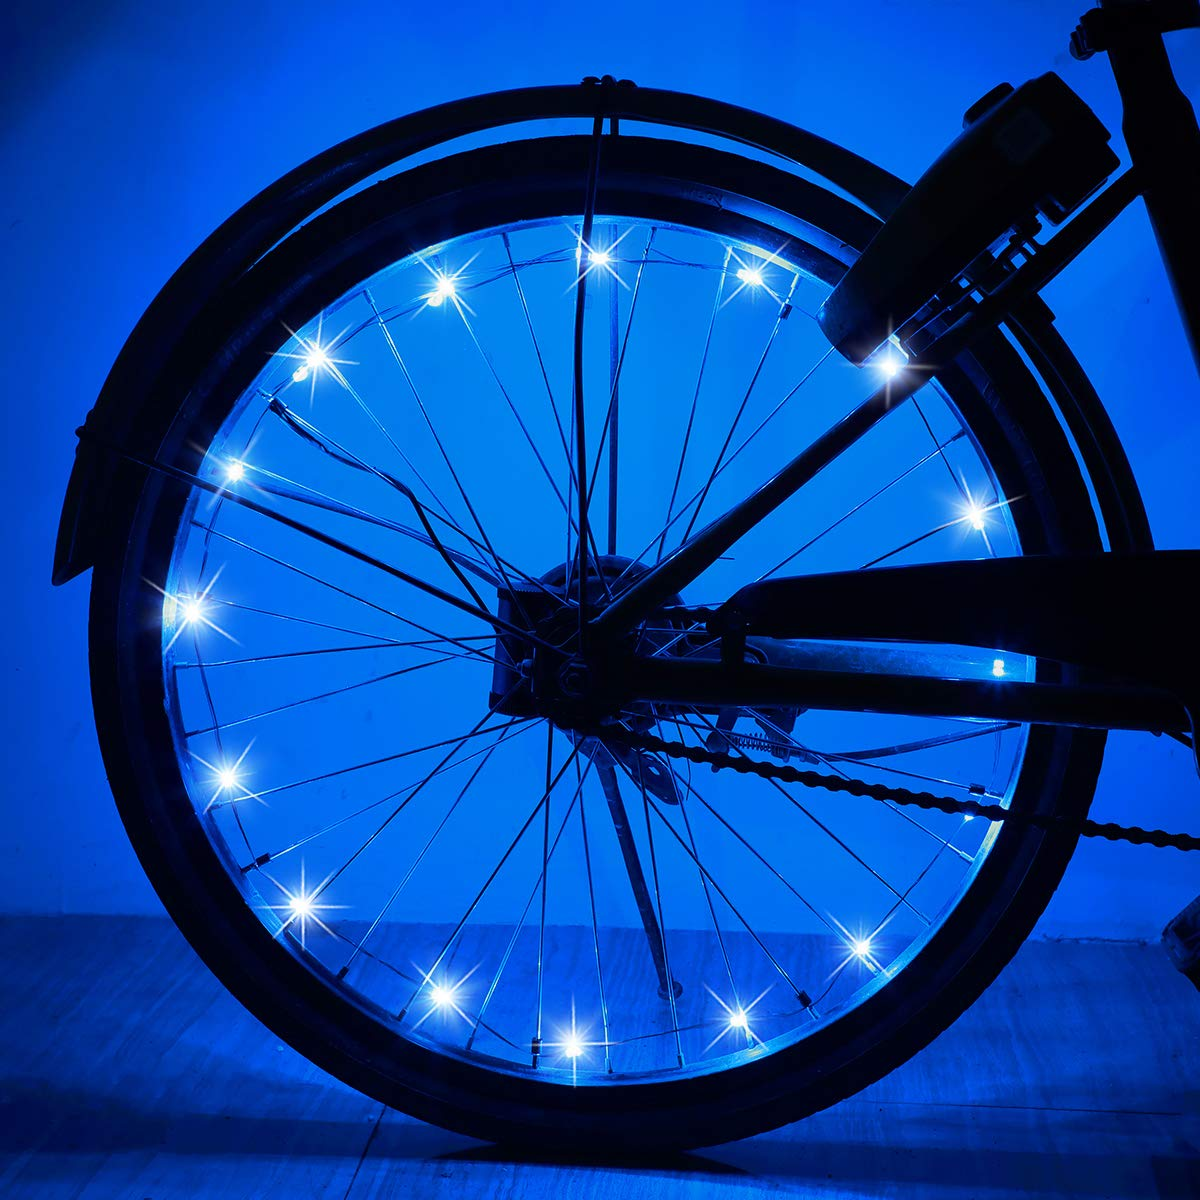 AOYOO Bicycle Wheel Light Night Light (1 Tire Pack) Waterproof 7 Color Outdoor Lighting Bicycle Tire Accessories You Can Choose Your Favorite Color 18 Flash Pattern Personality Selection, Safety Spoke by AOYOO (Image #2)